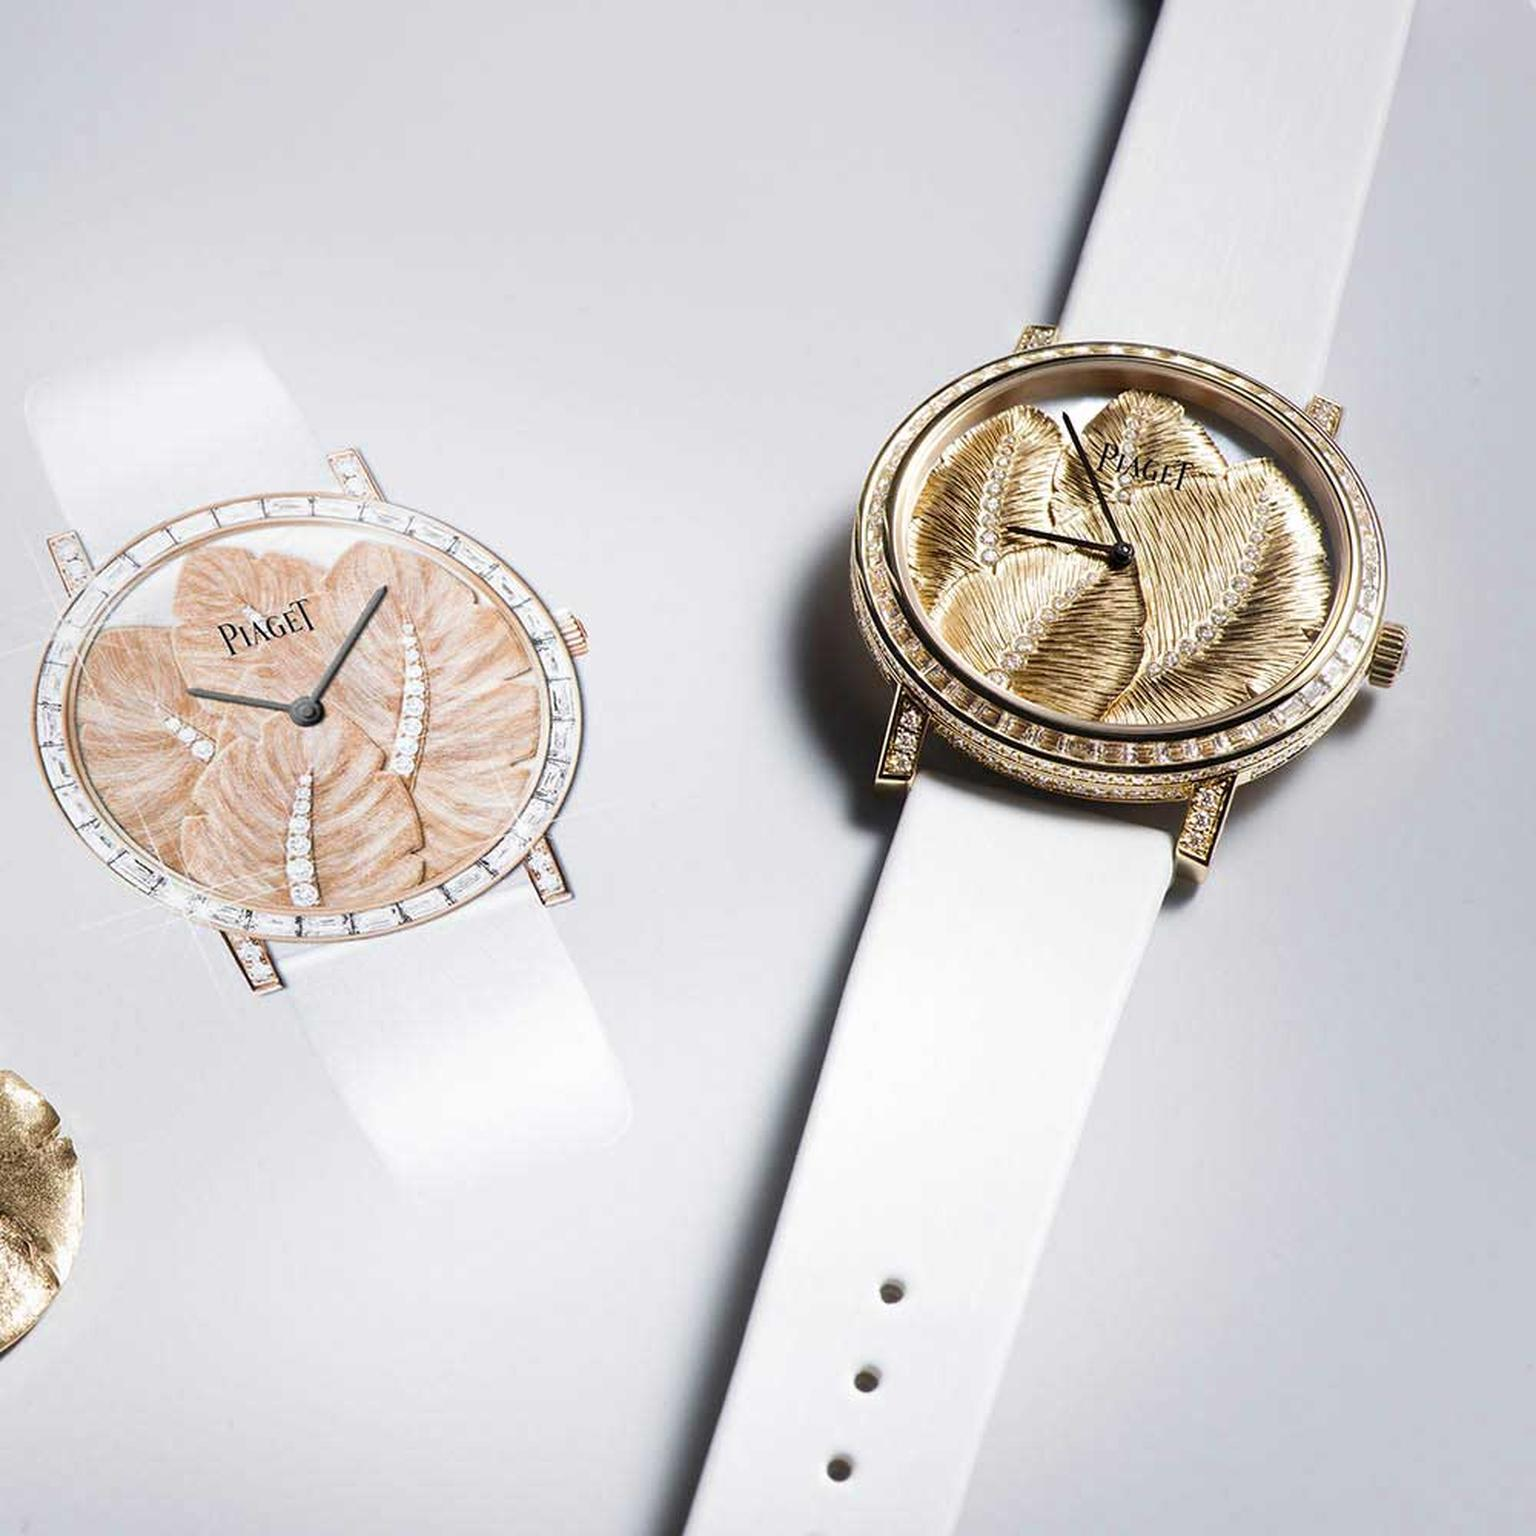 Piaget-Sunny-Side-of-Life-watch